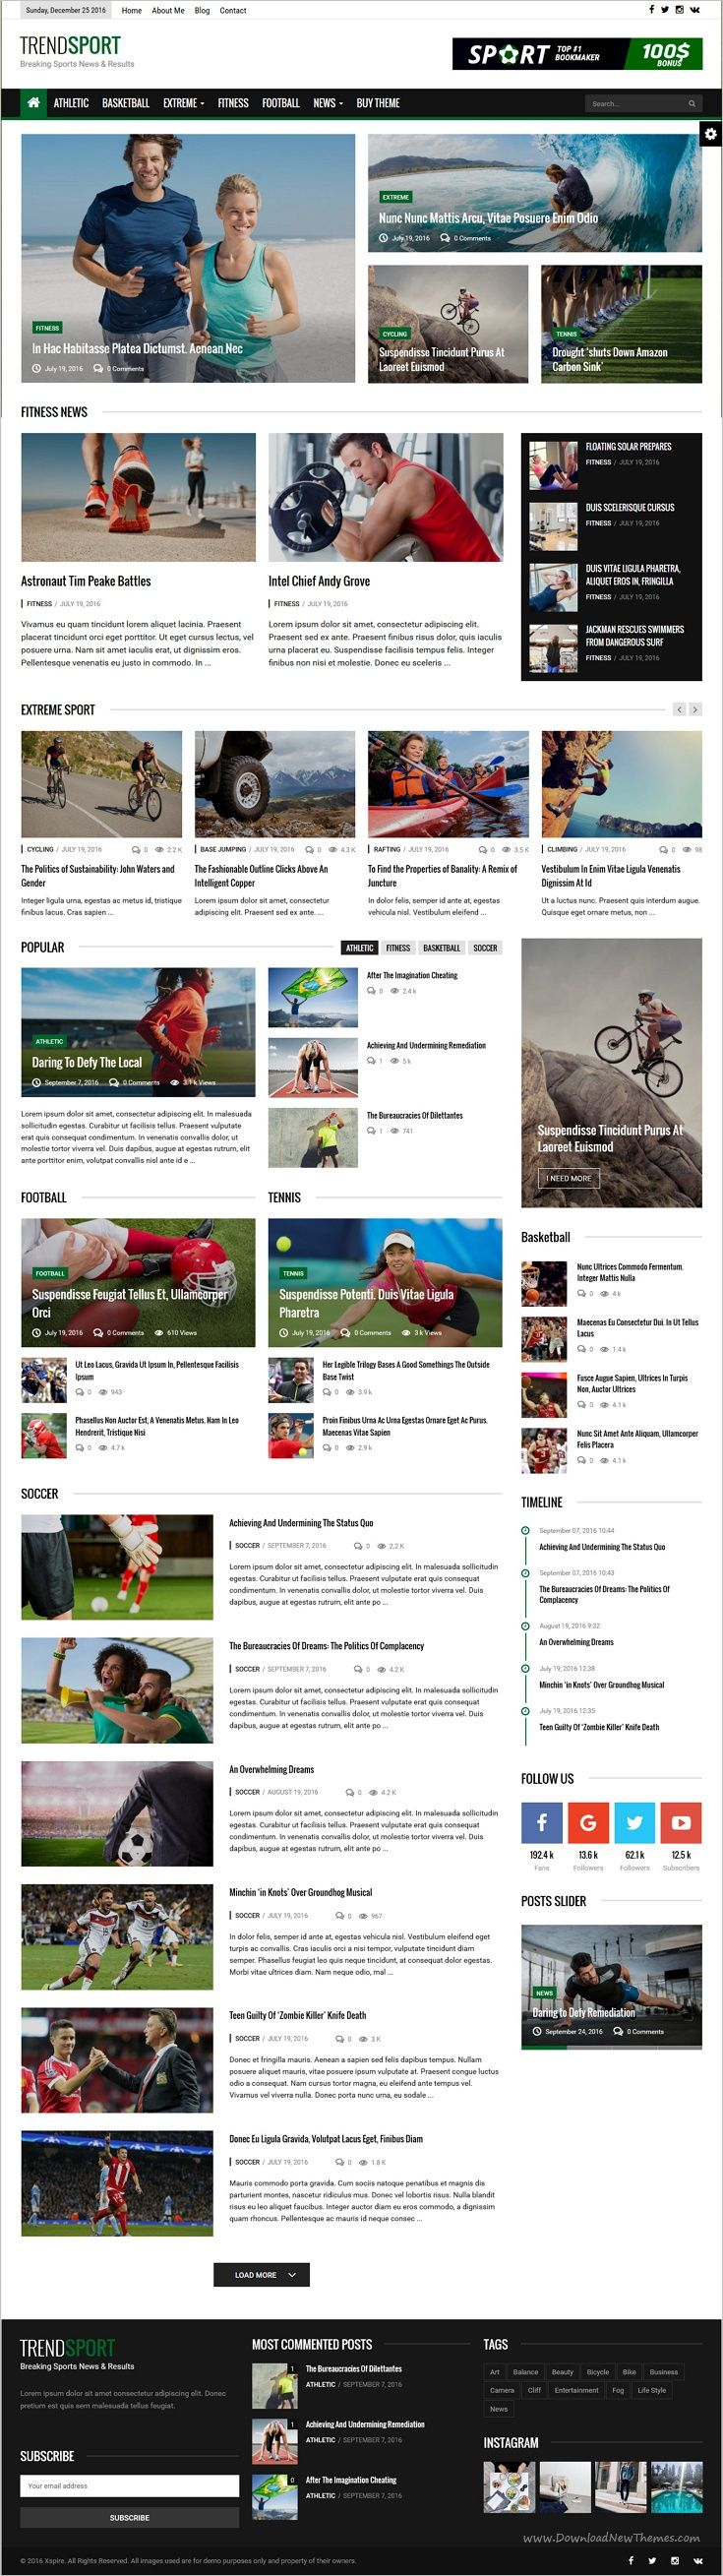 Trend is an amazing responsive #WordPress template for #sports #Newspaper, blog and #magazine website with 6 niche homepage layouts download now➩  https://themeforest.net/item/trend-news-responsive-magazine-theme/18620258?ref=Datasata